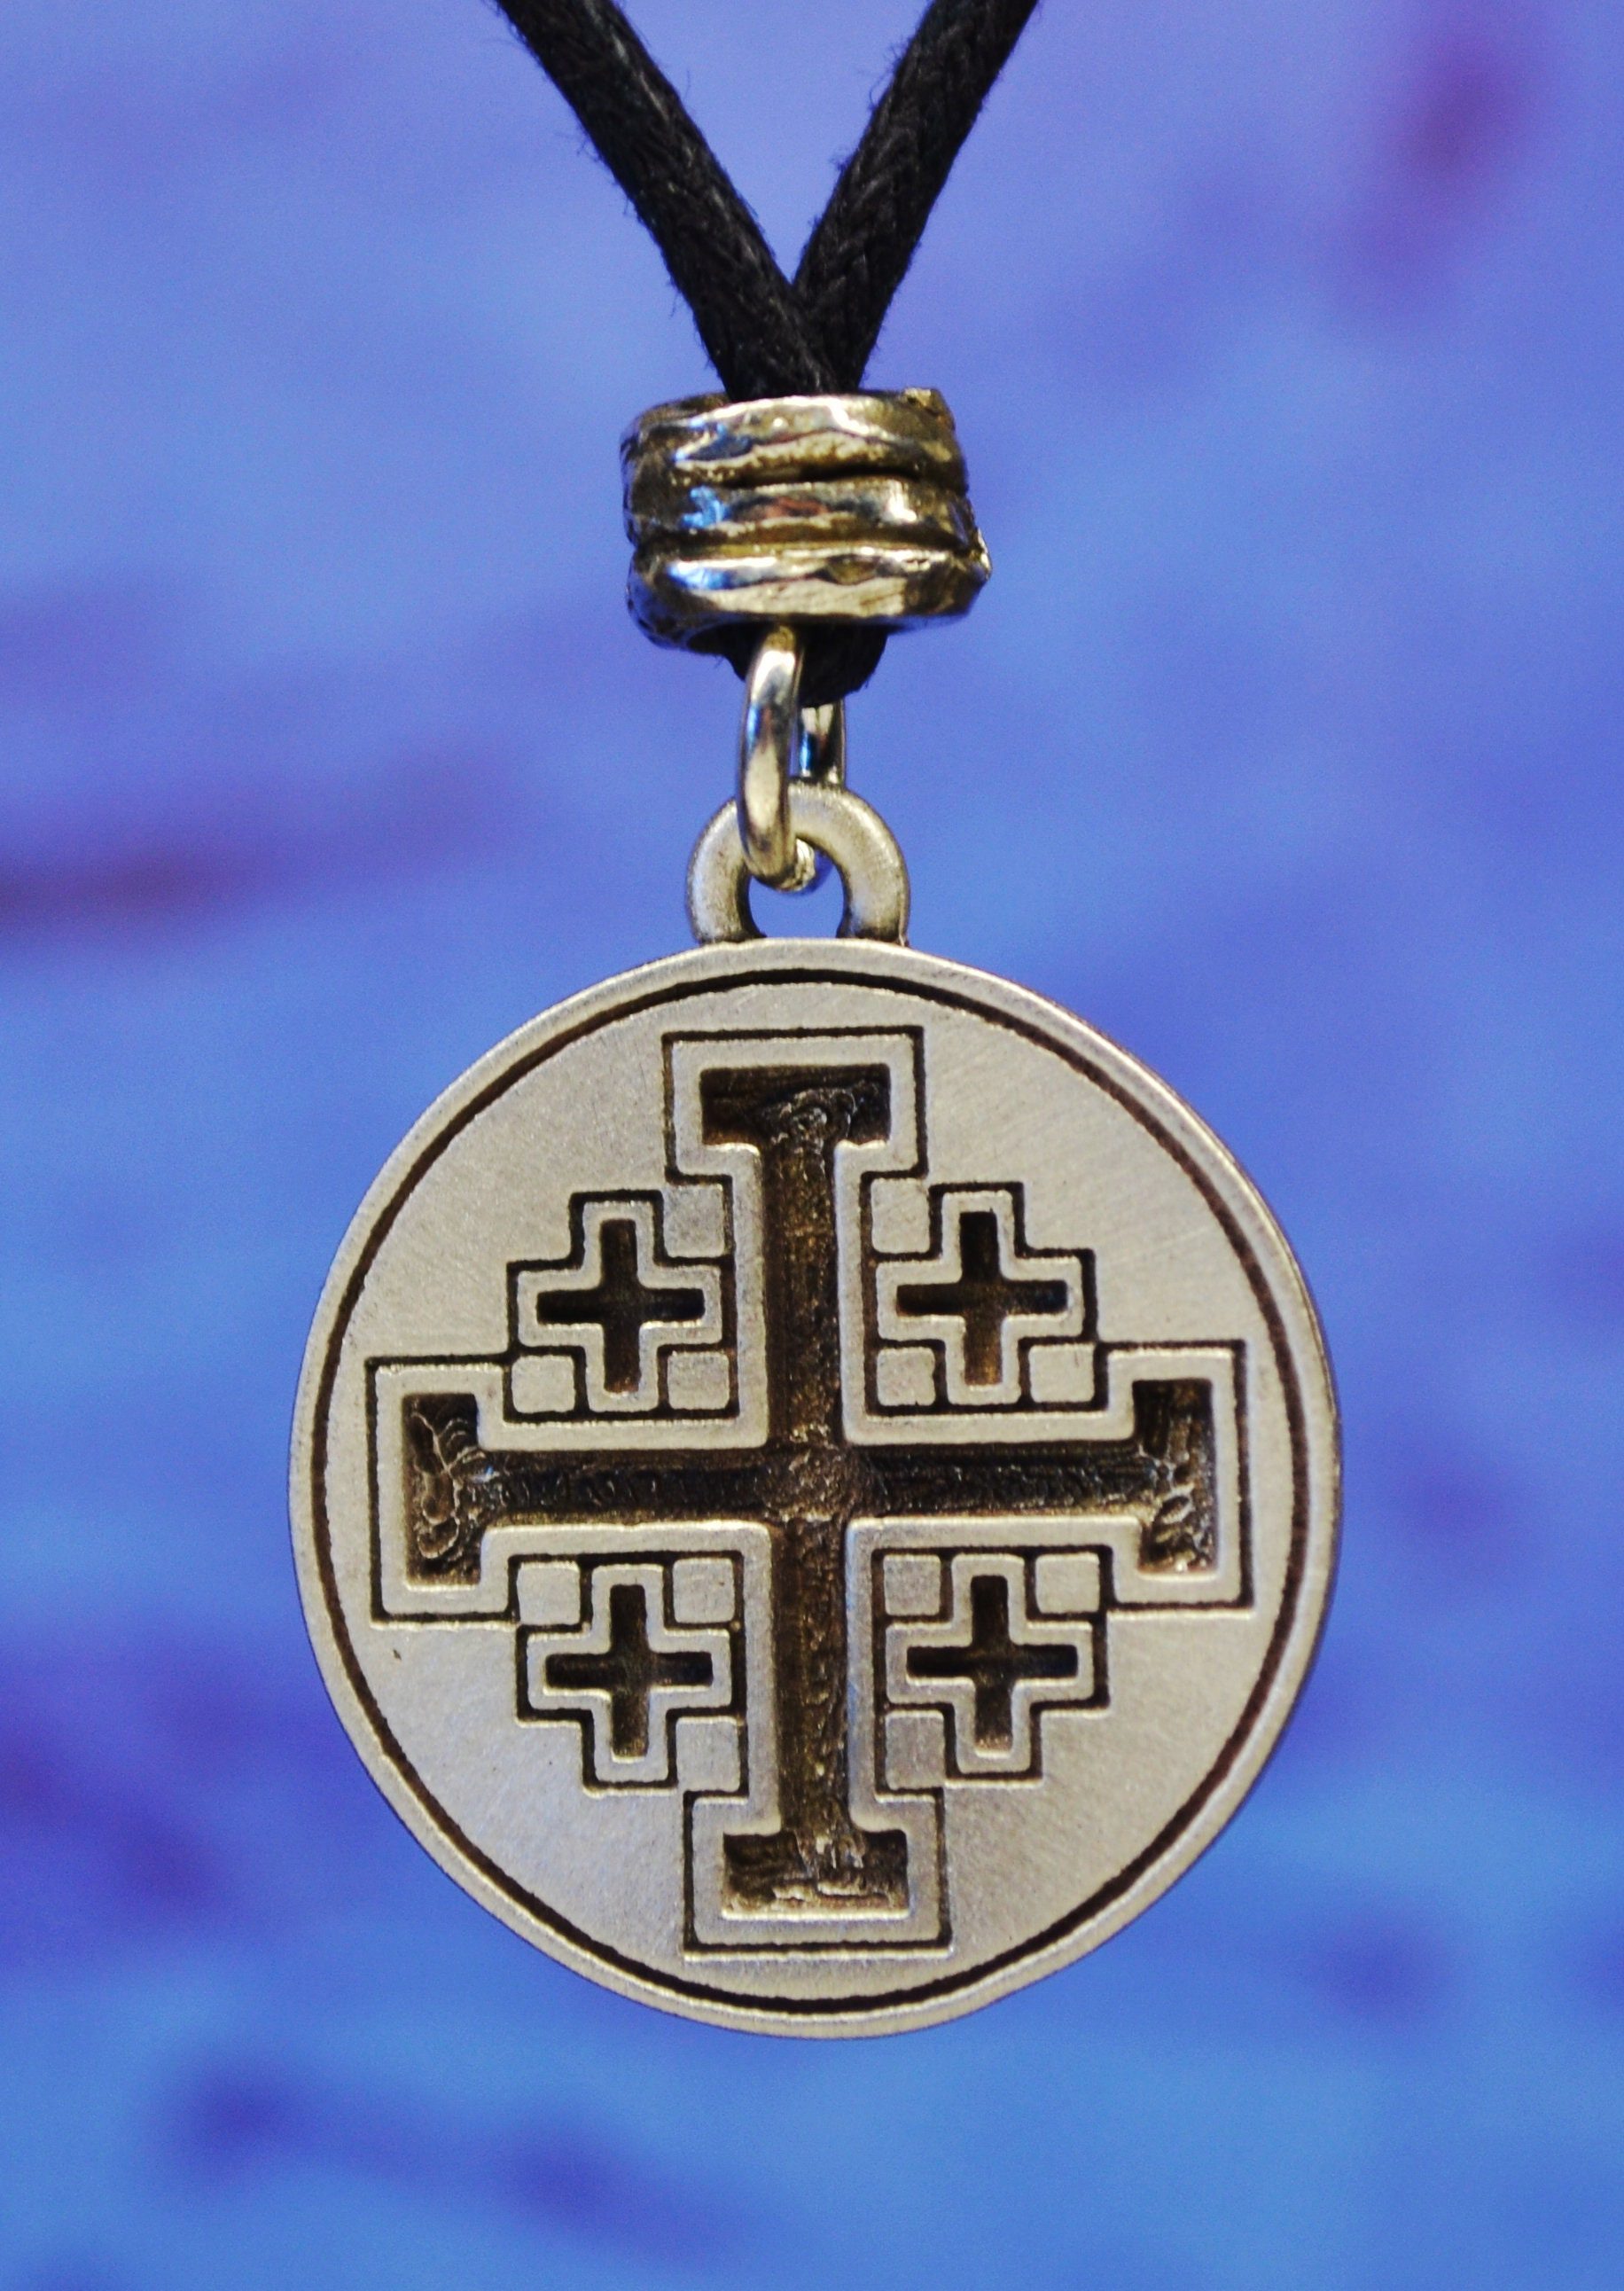 jewelry w crusader style free aliexpress rock polishing pendant wholesale crusades steel stainless com and men cross necklace buy on jerusalem get with chain shipping link punk